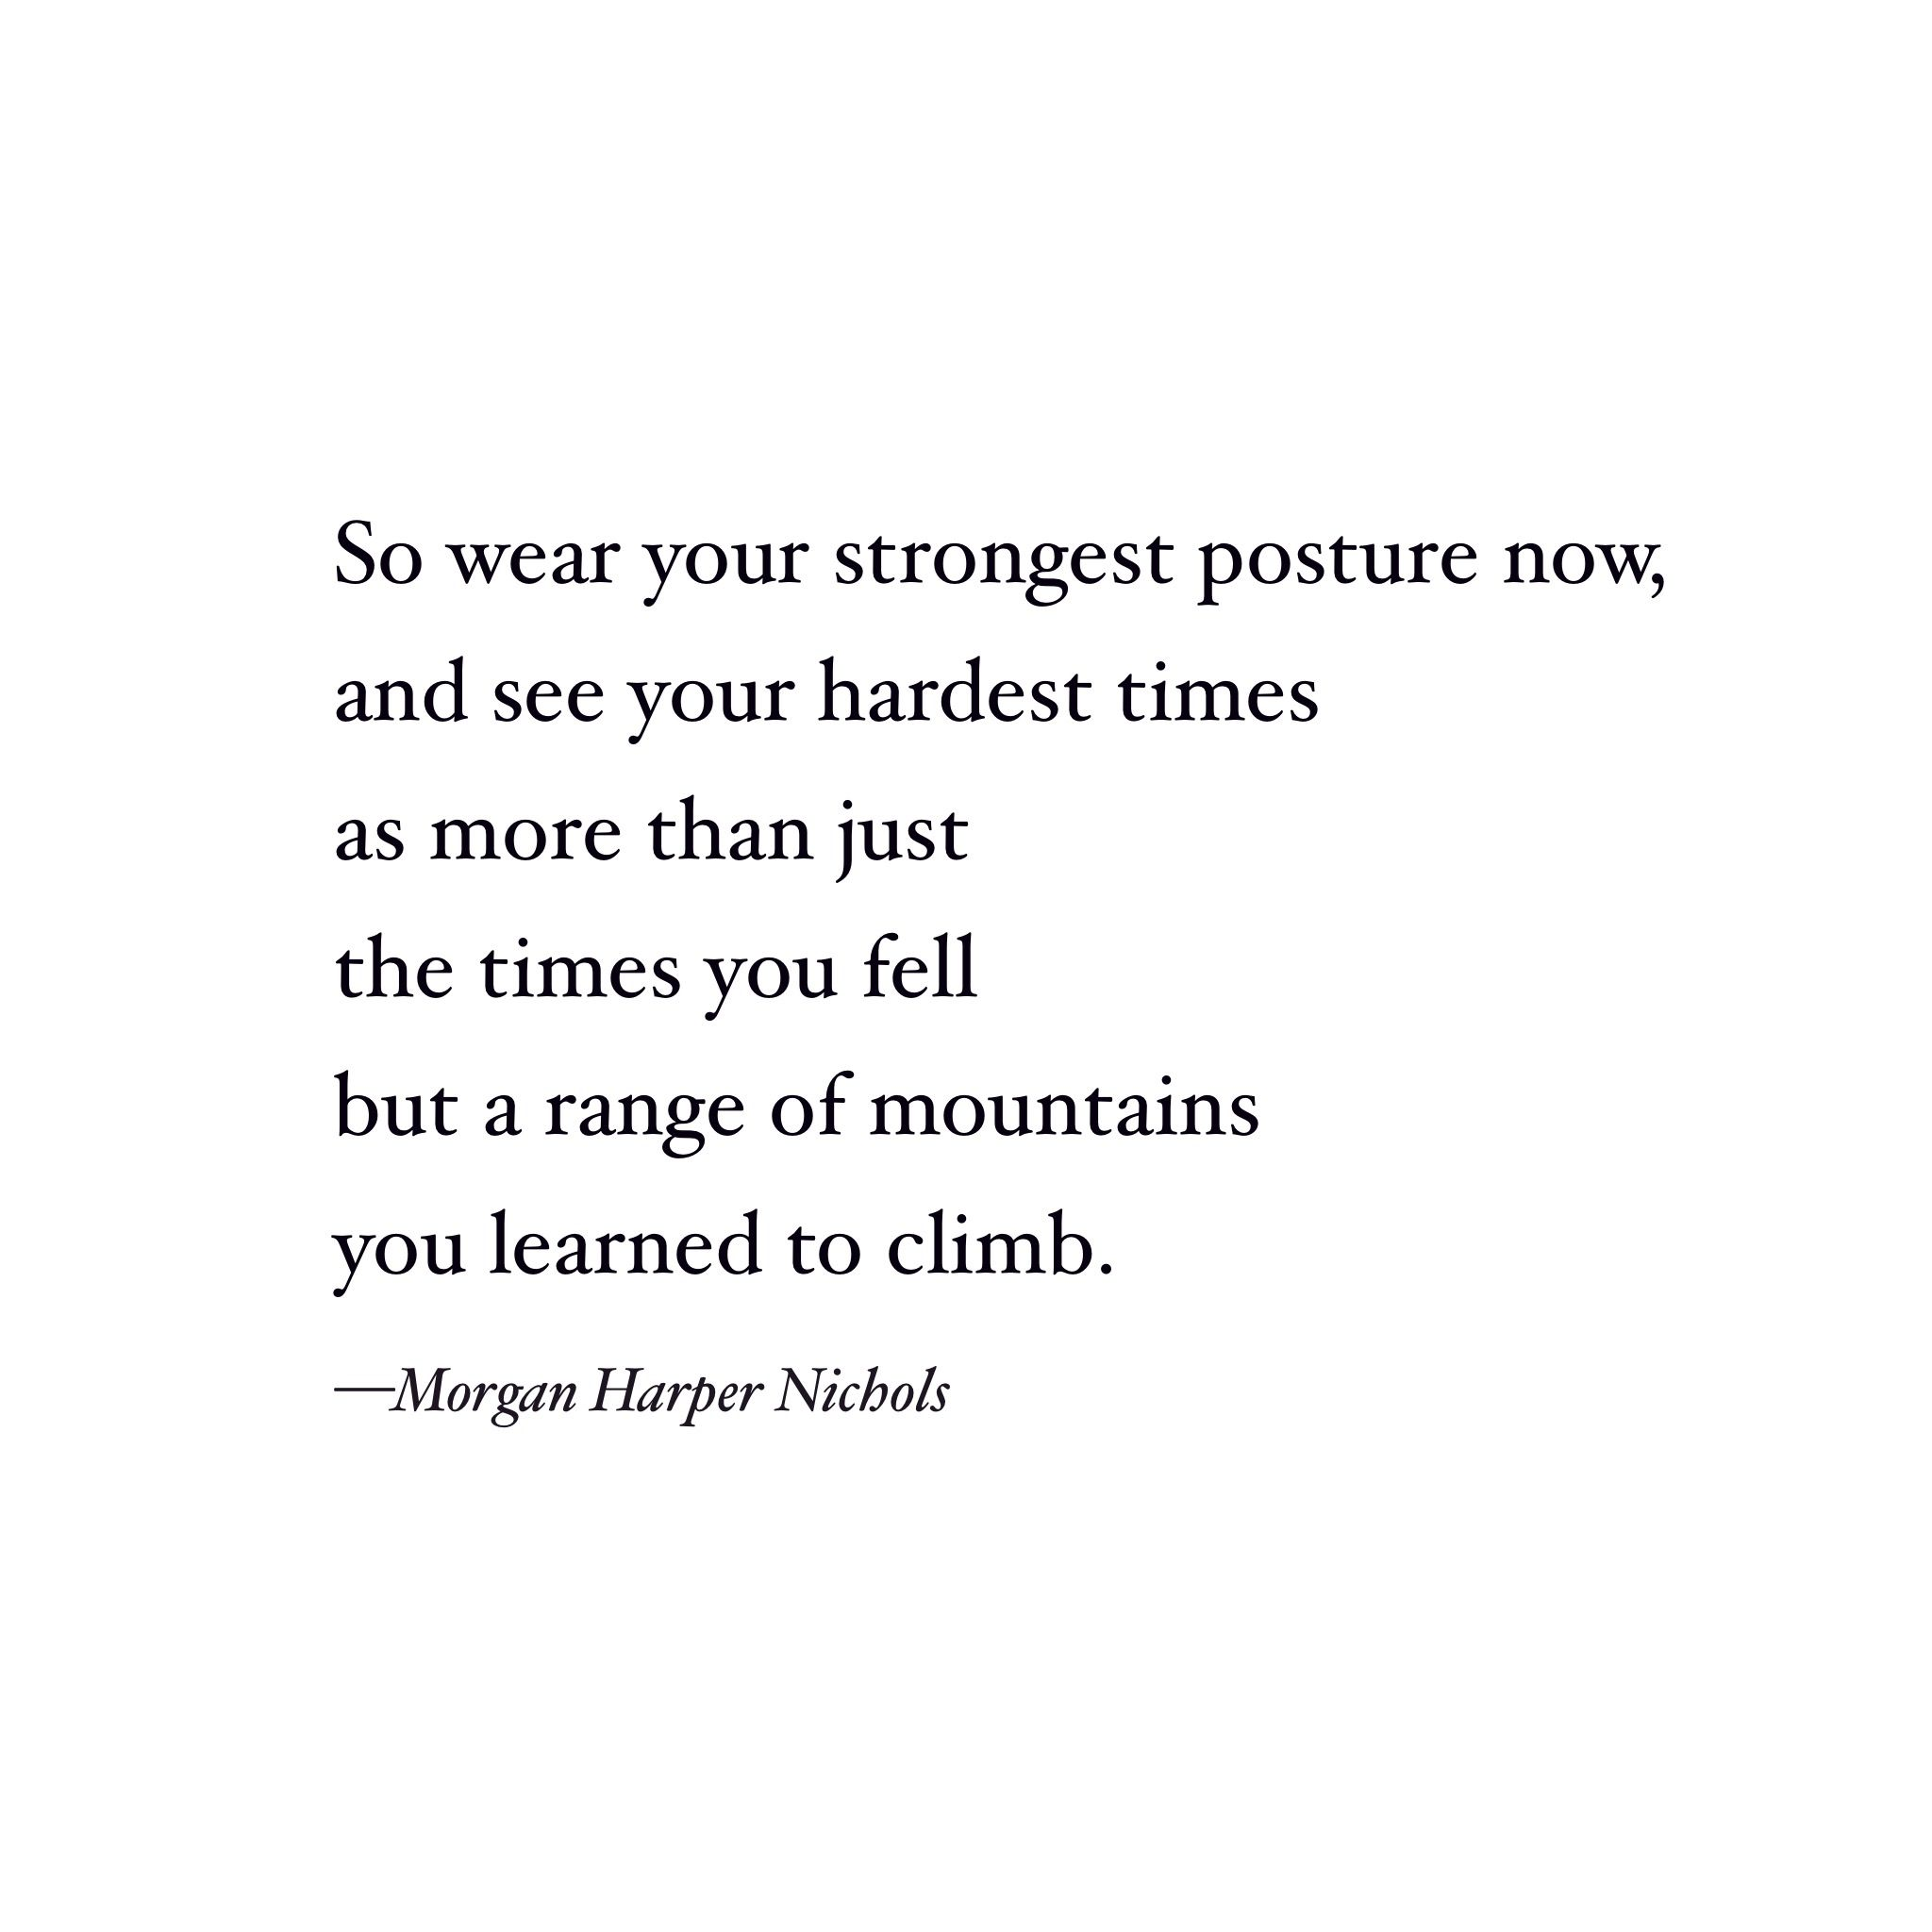 Poems Of Strenght 5